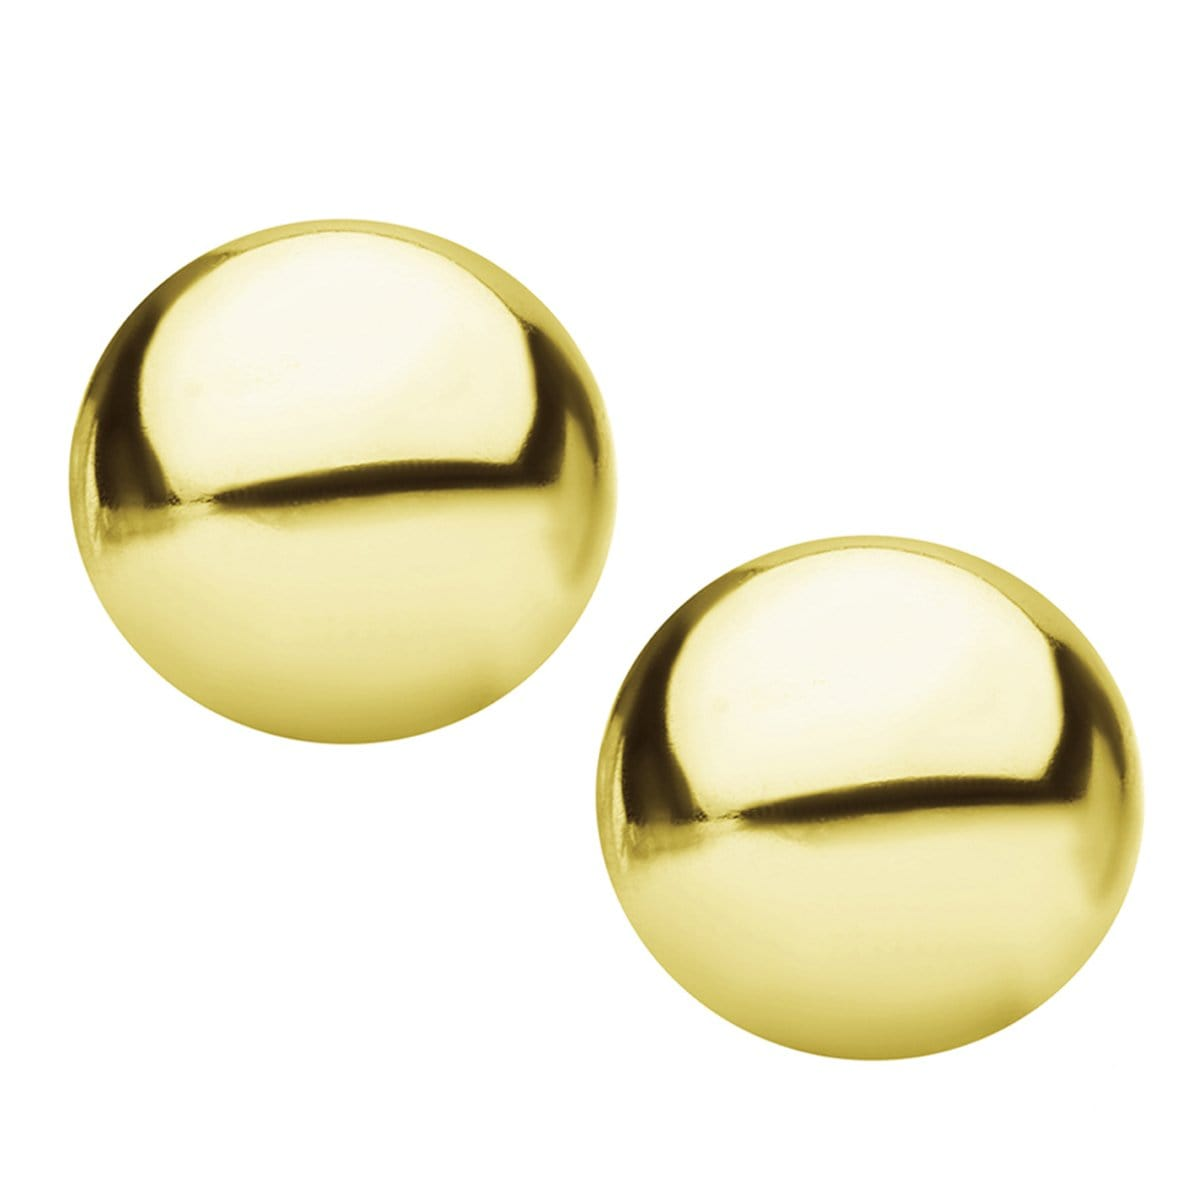 Gold Stainless Steel Small Round Dome Studs Earrings